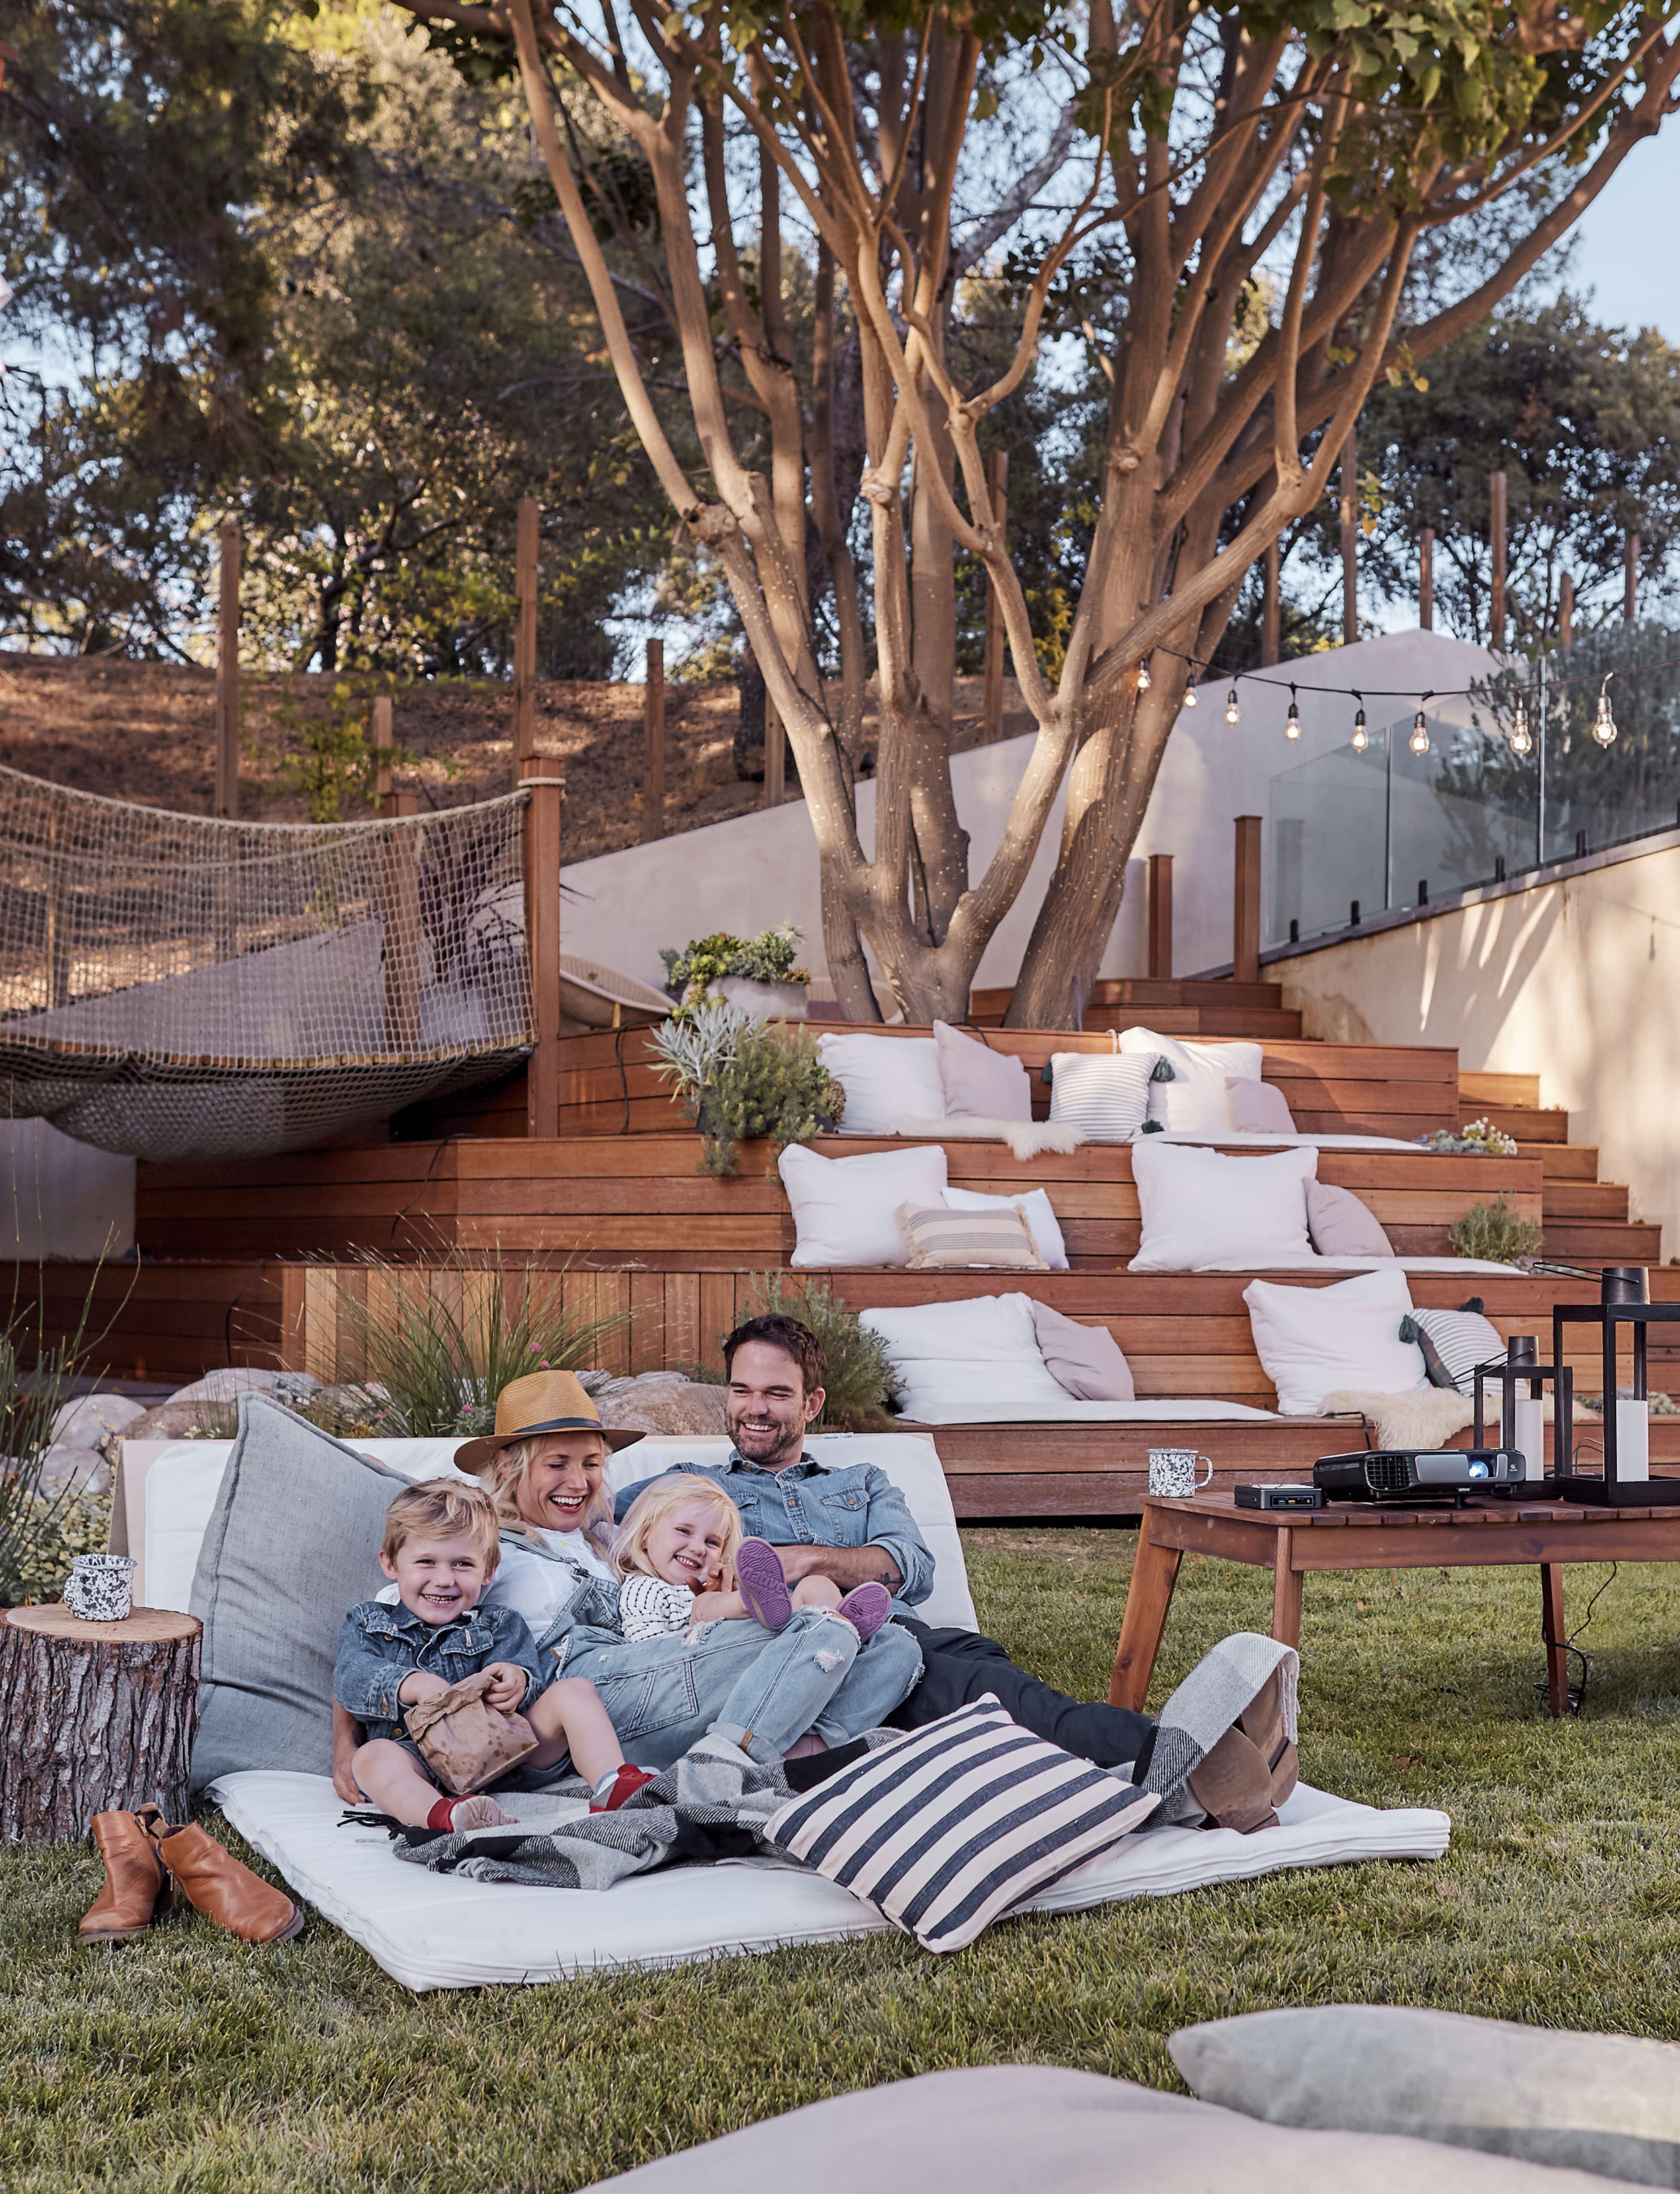 The Ultimate Outdoor Movie Night And Campout With Intel with regard to 12 Genius Concepts of How to Craft Backyard Movie Night Ideas